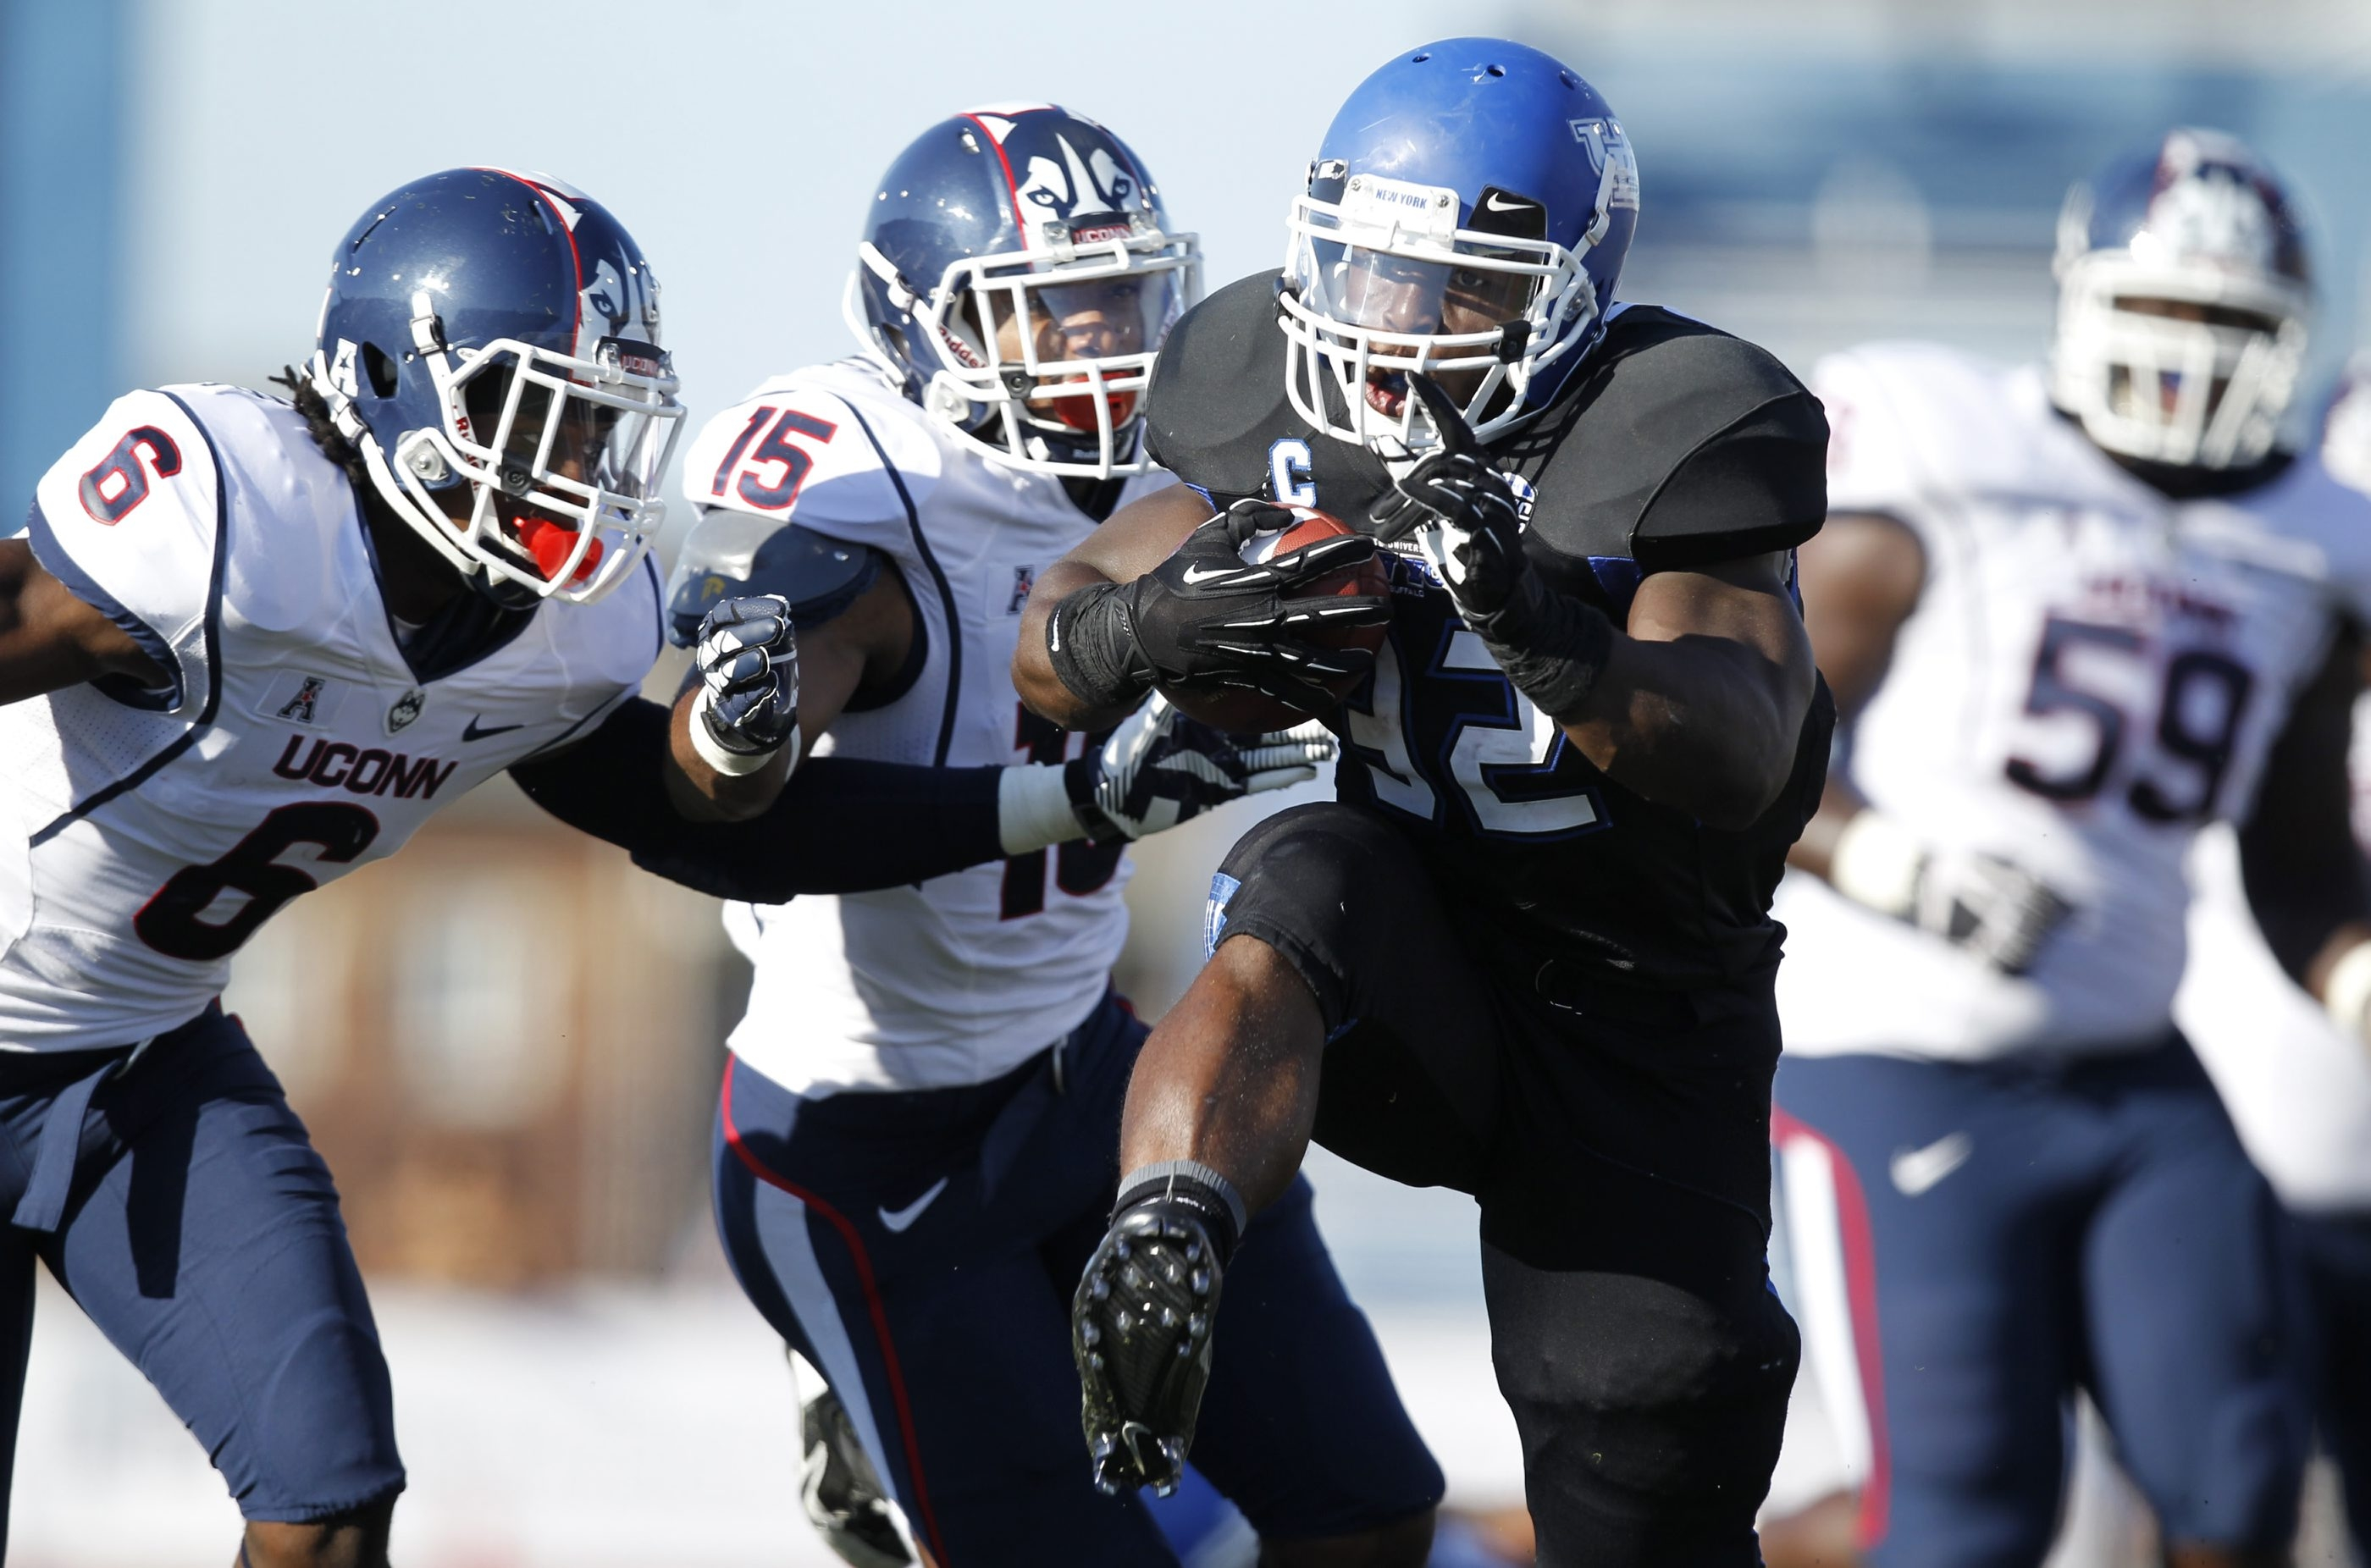 UB's Branden Oliver picked up 90 yards and scored a second-quarter touchdown.